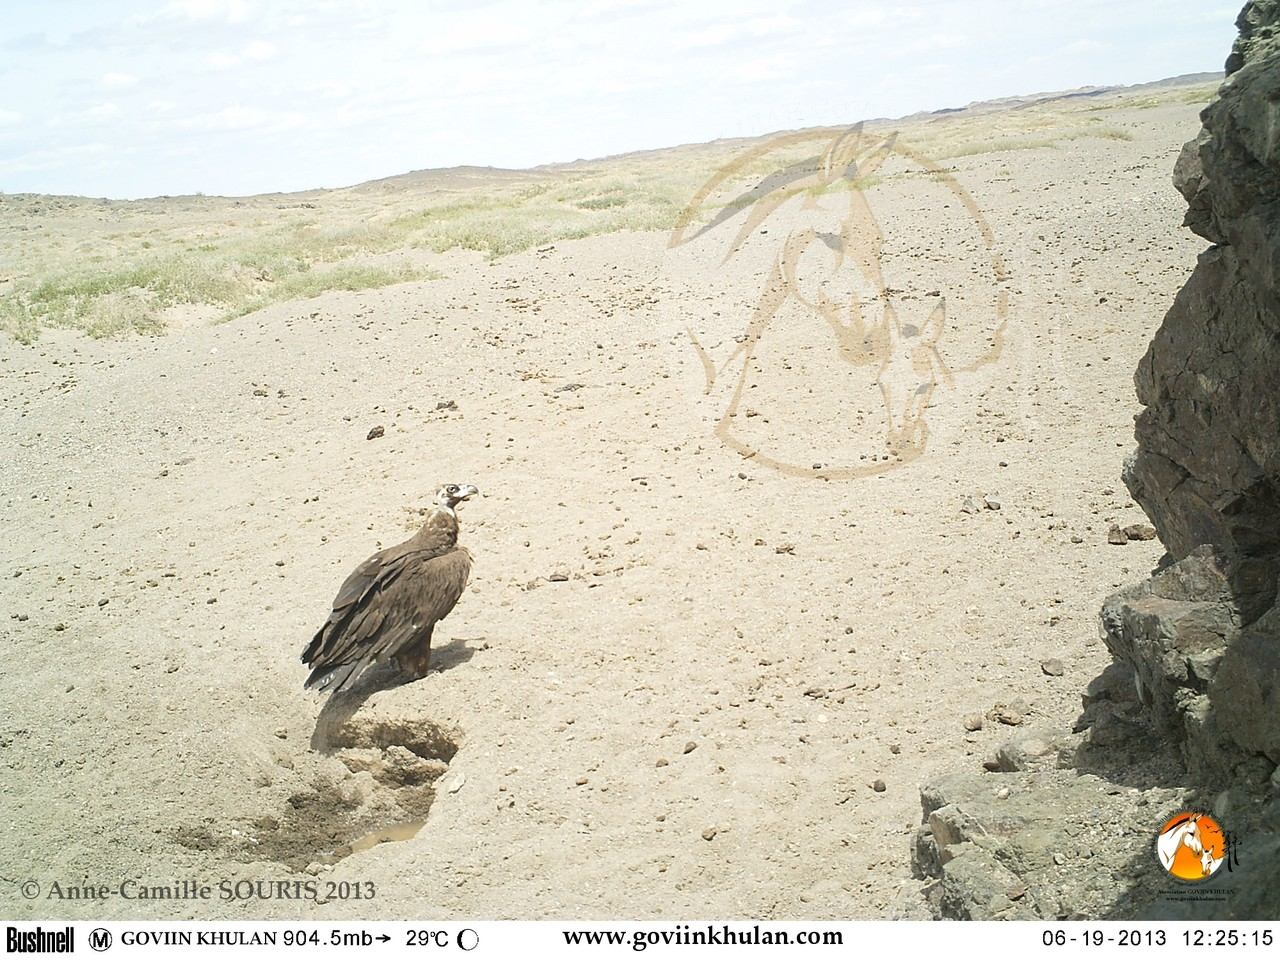 Vulture near a hole dug by a khulan at a dry river bed / Gobi, Mongolia / June 2013